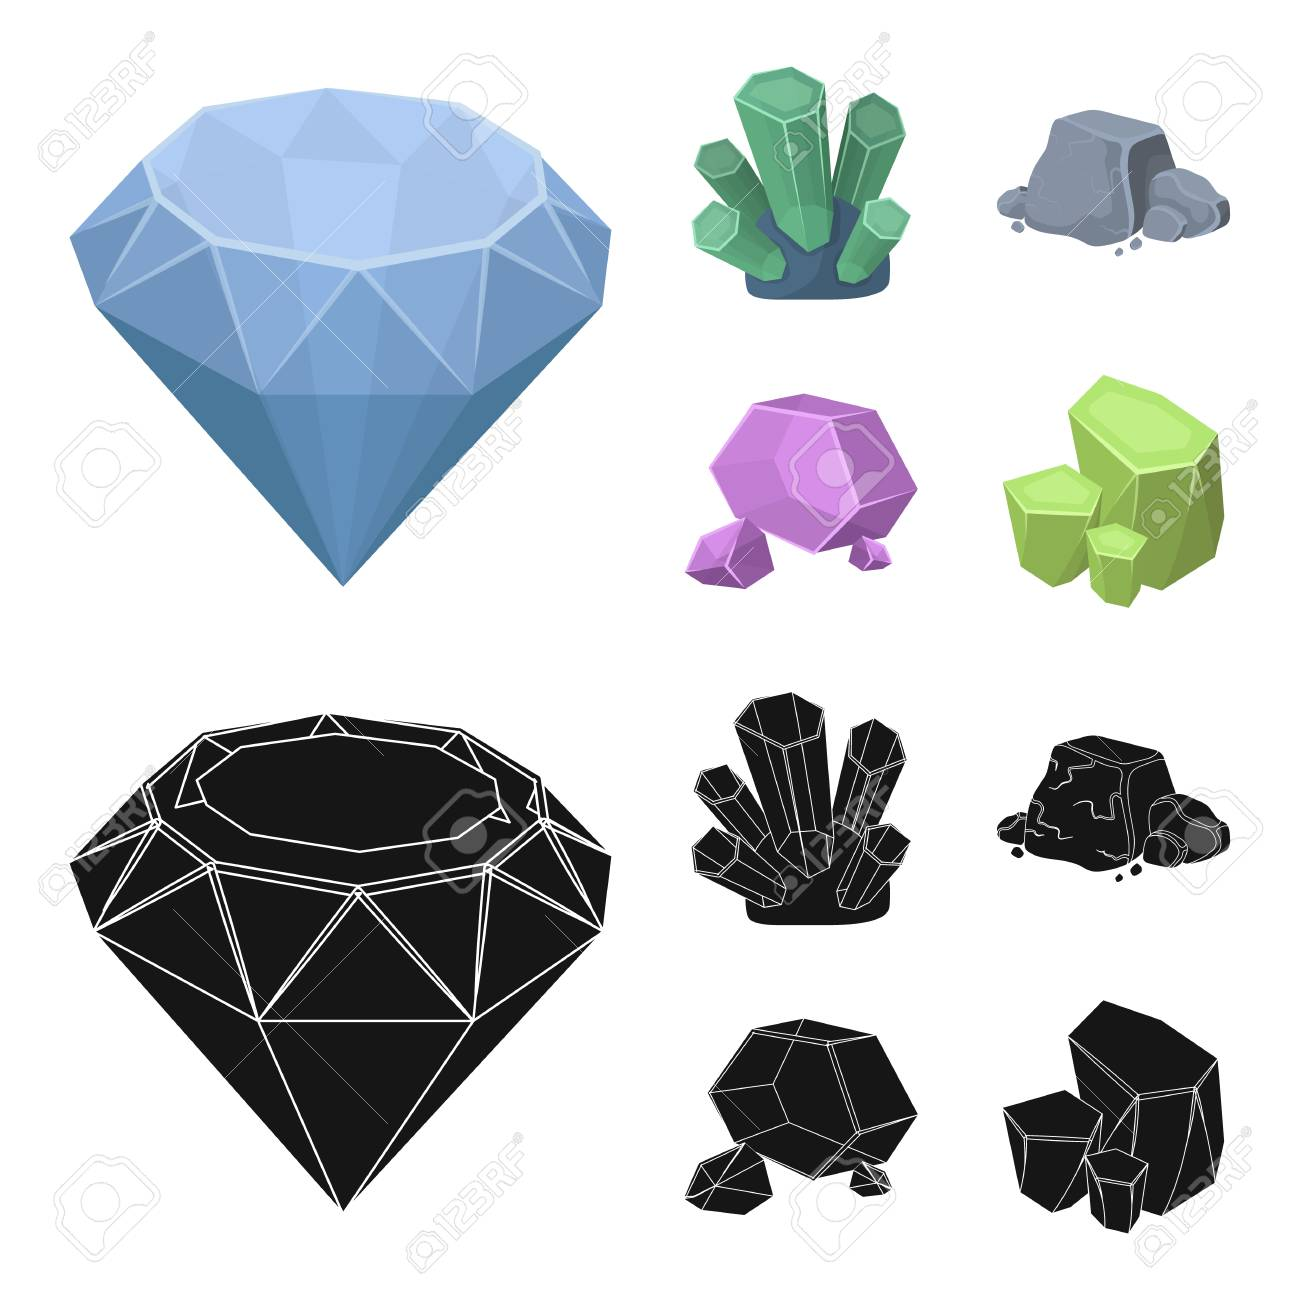 Crystals Iron Ore Precious Minerals And A Jeweler Set Collection